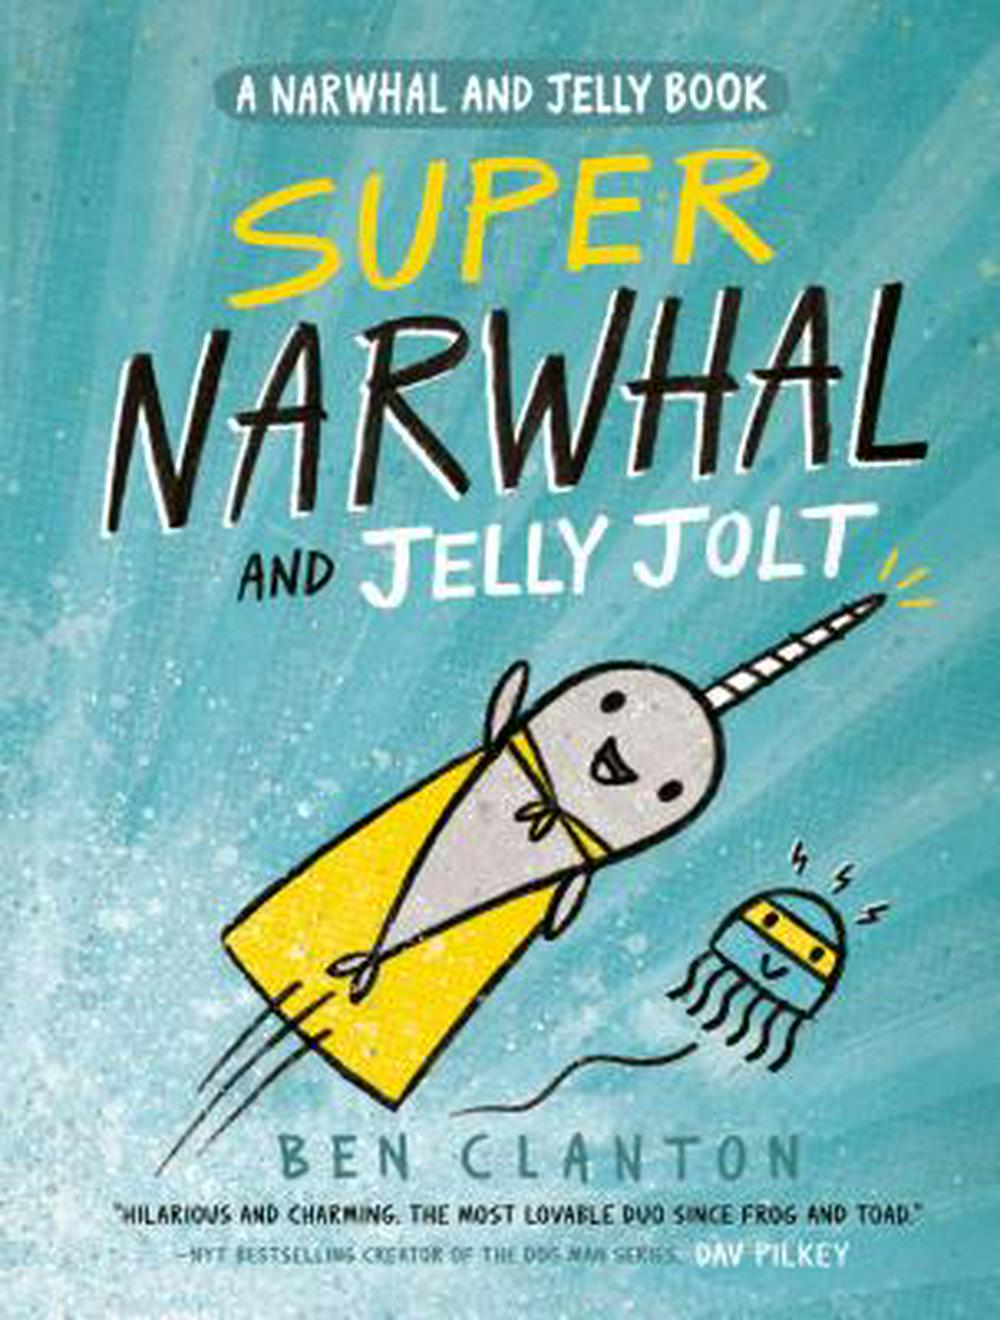 Super Narwhal and Jelly JoltA Narwhal and Jelly Book by Ben Clanton, ISBN: 9781101919194